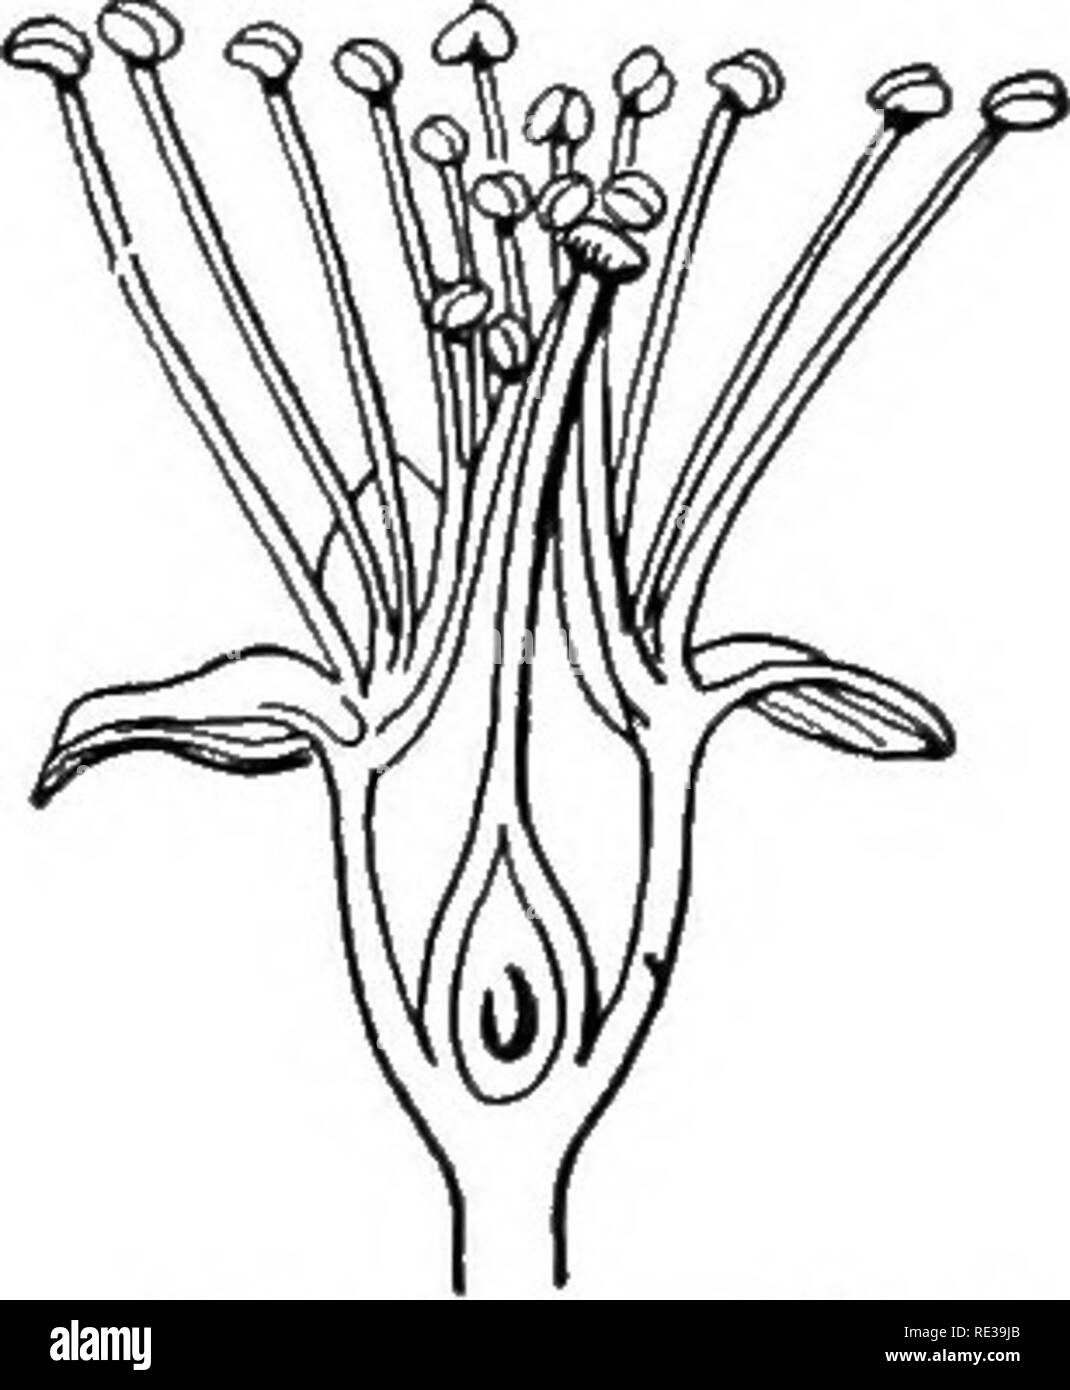 . A practical course in botany, with especial reference to its bearings on agriculture, economics, and sanitation. Botany. THE FLOWER 209 ovules and seeds. Draw the ovary in cross and vertical sections, labeling correctly all the parts. 229. The numerical plan of dicotyls. — Diagram the plan of the flower in cross and vertical section. How many parts are there in each set ? Can you tell readily the number of stamens? When the indi- viduals of any set or cycle of organs are too numerous to be easily, counted, like the stamens of the apple, pear, and peach, or the petals of the water lily, they  - Stock Image